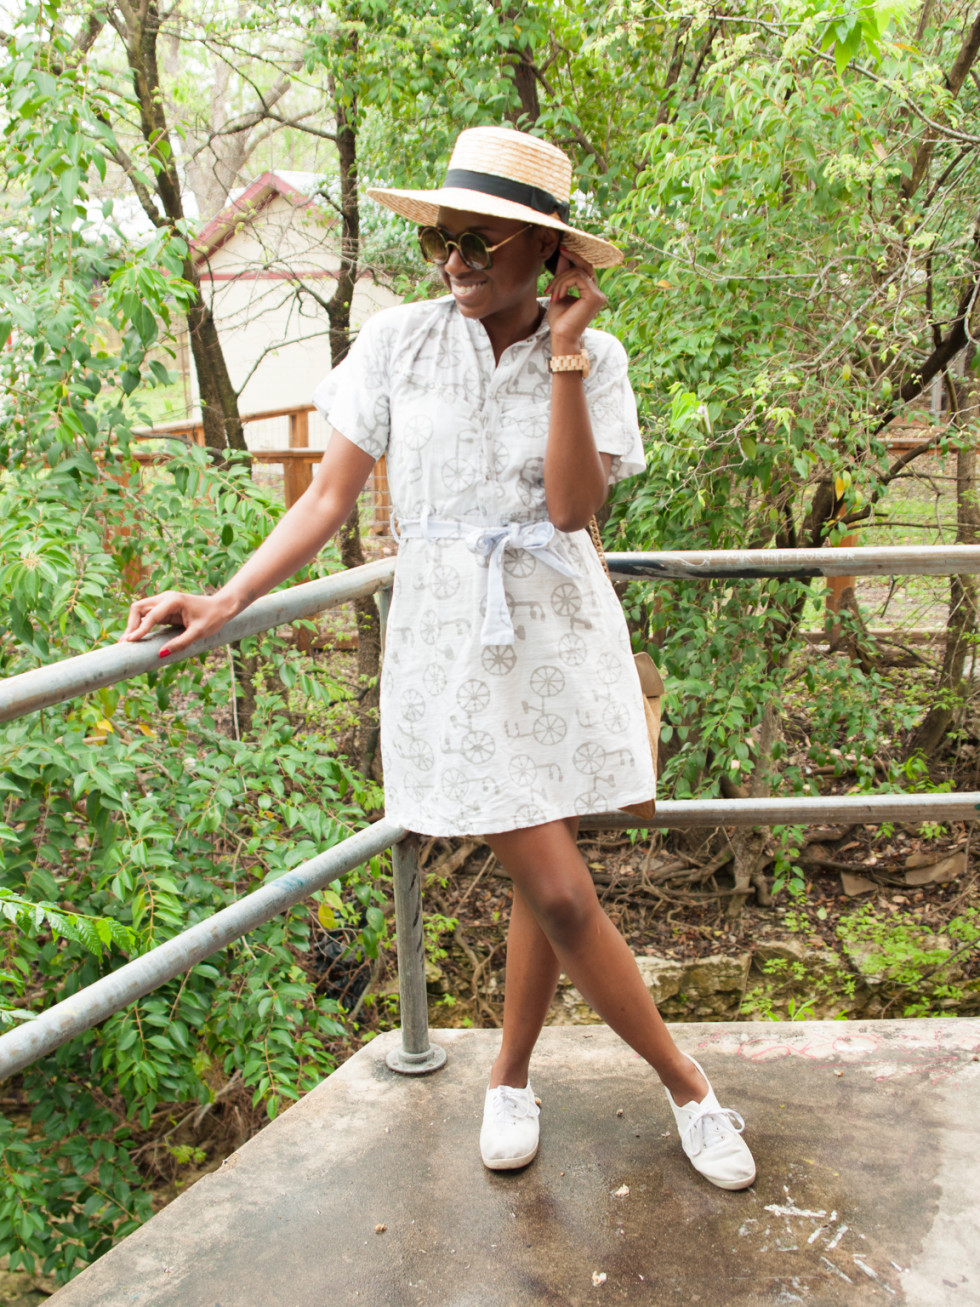 Model wears white dress and white tennis shoes in austin, texas